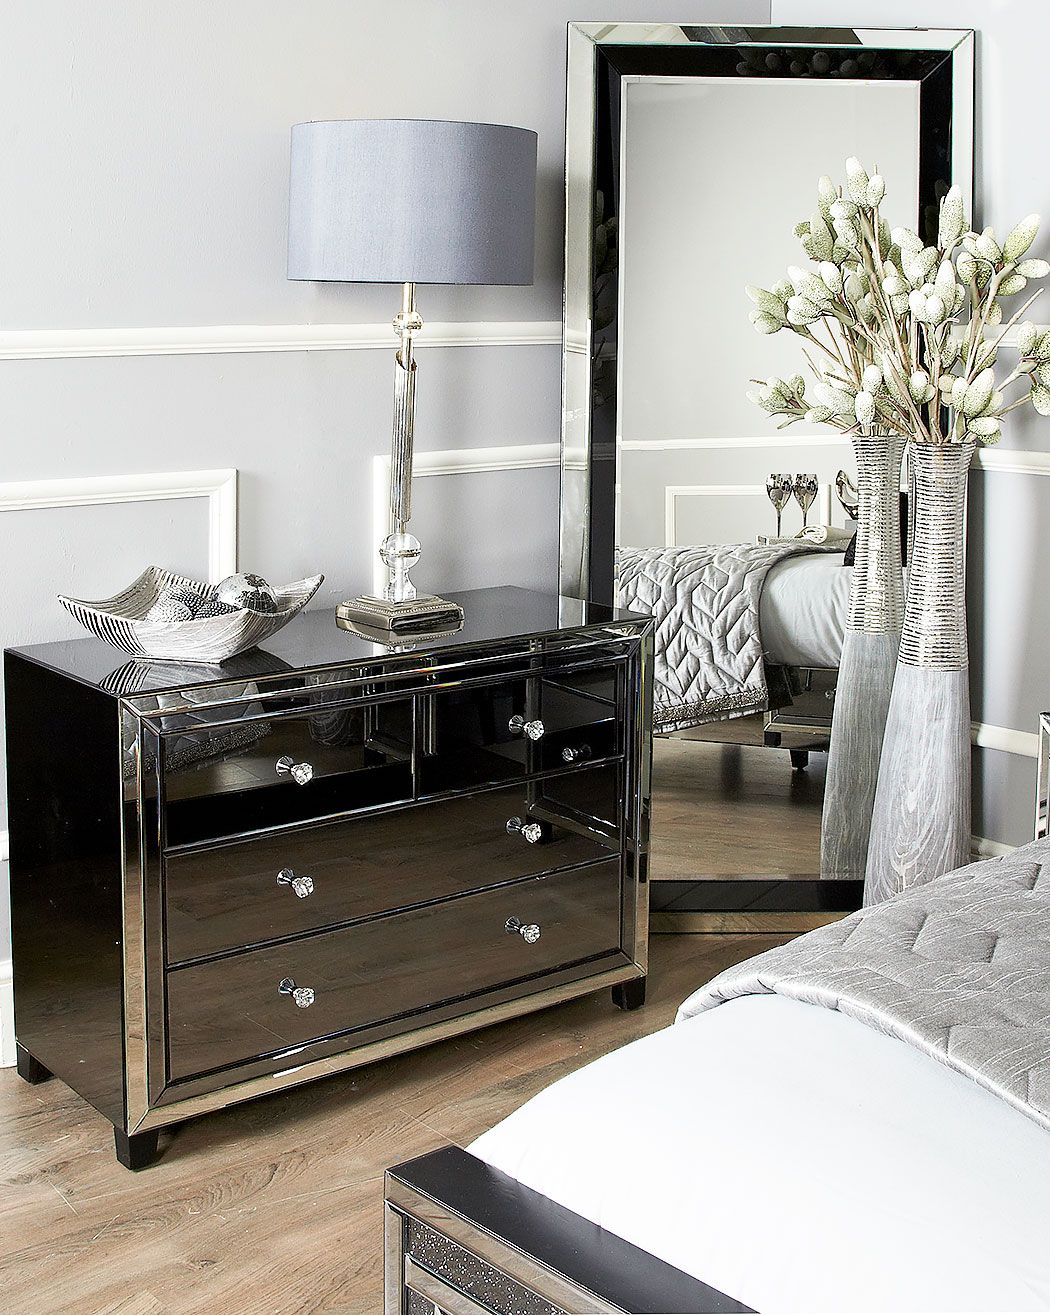 Large Arctic Noir Black Smoked Glass Mirrored 4 Drawer Chest Of Drawer Picture Perfect Home Glass Bedroom Furniture Mirrored Bedroom Furniture Silver Bedroom Furniture